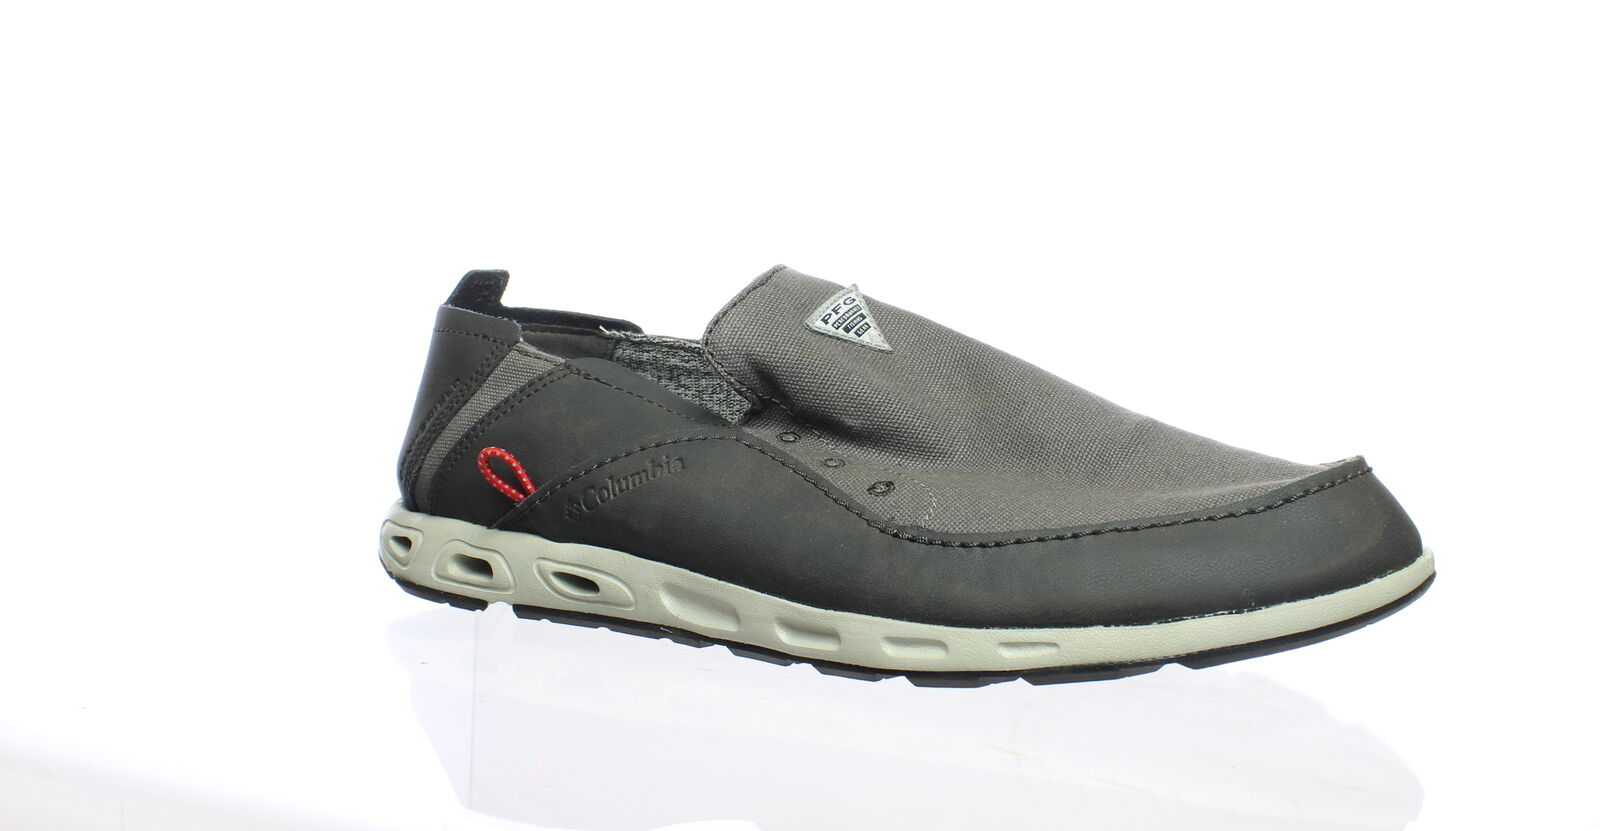 Columbia Mens Water shoes Size 12 (412722)